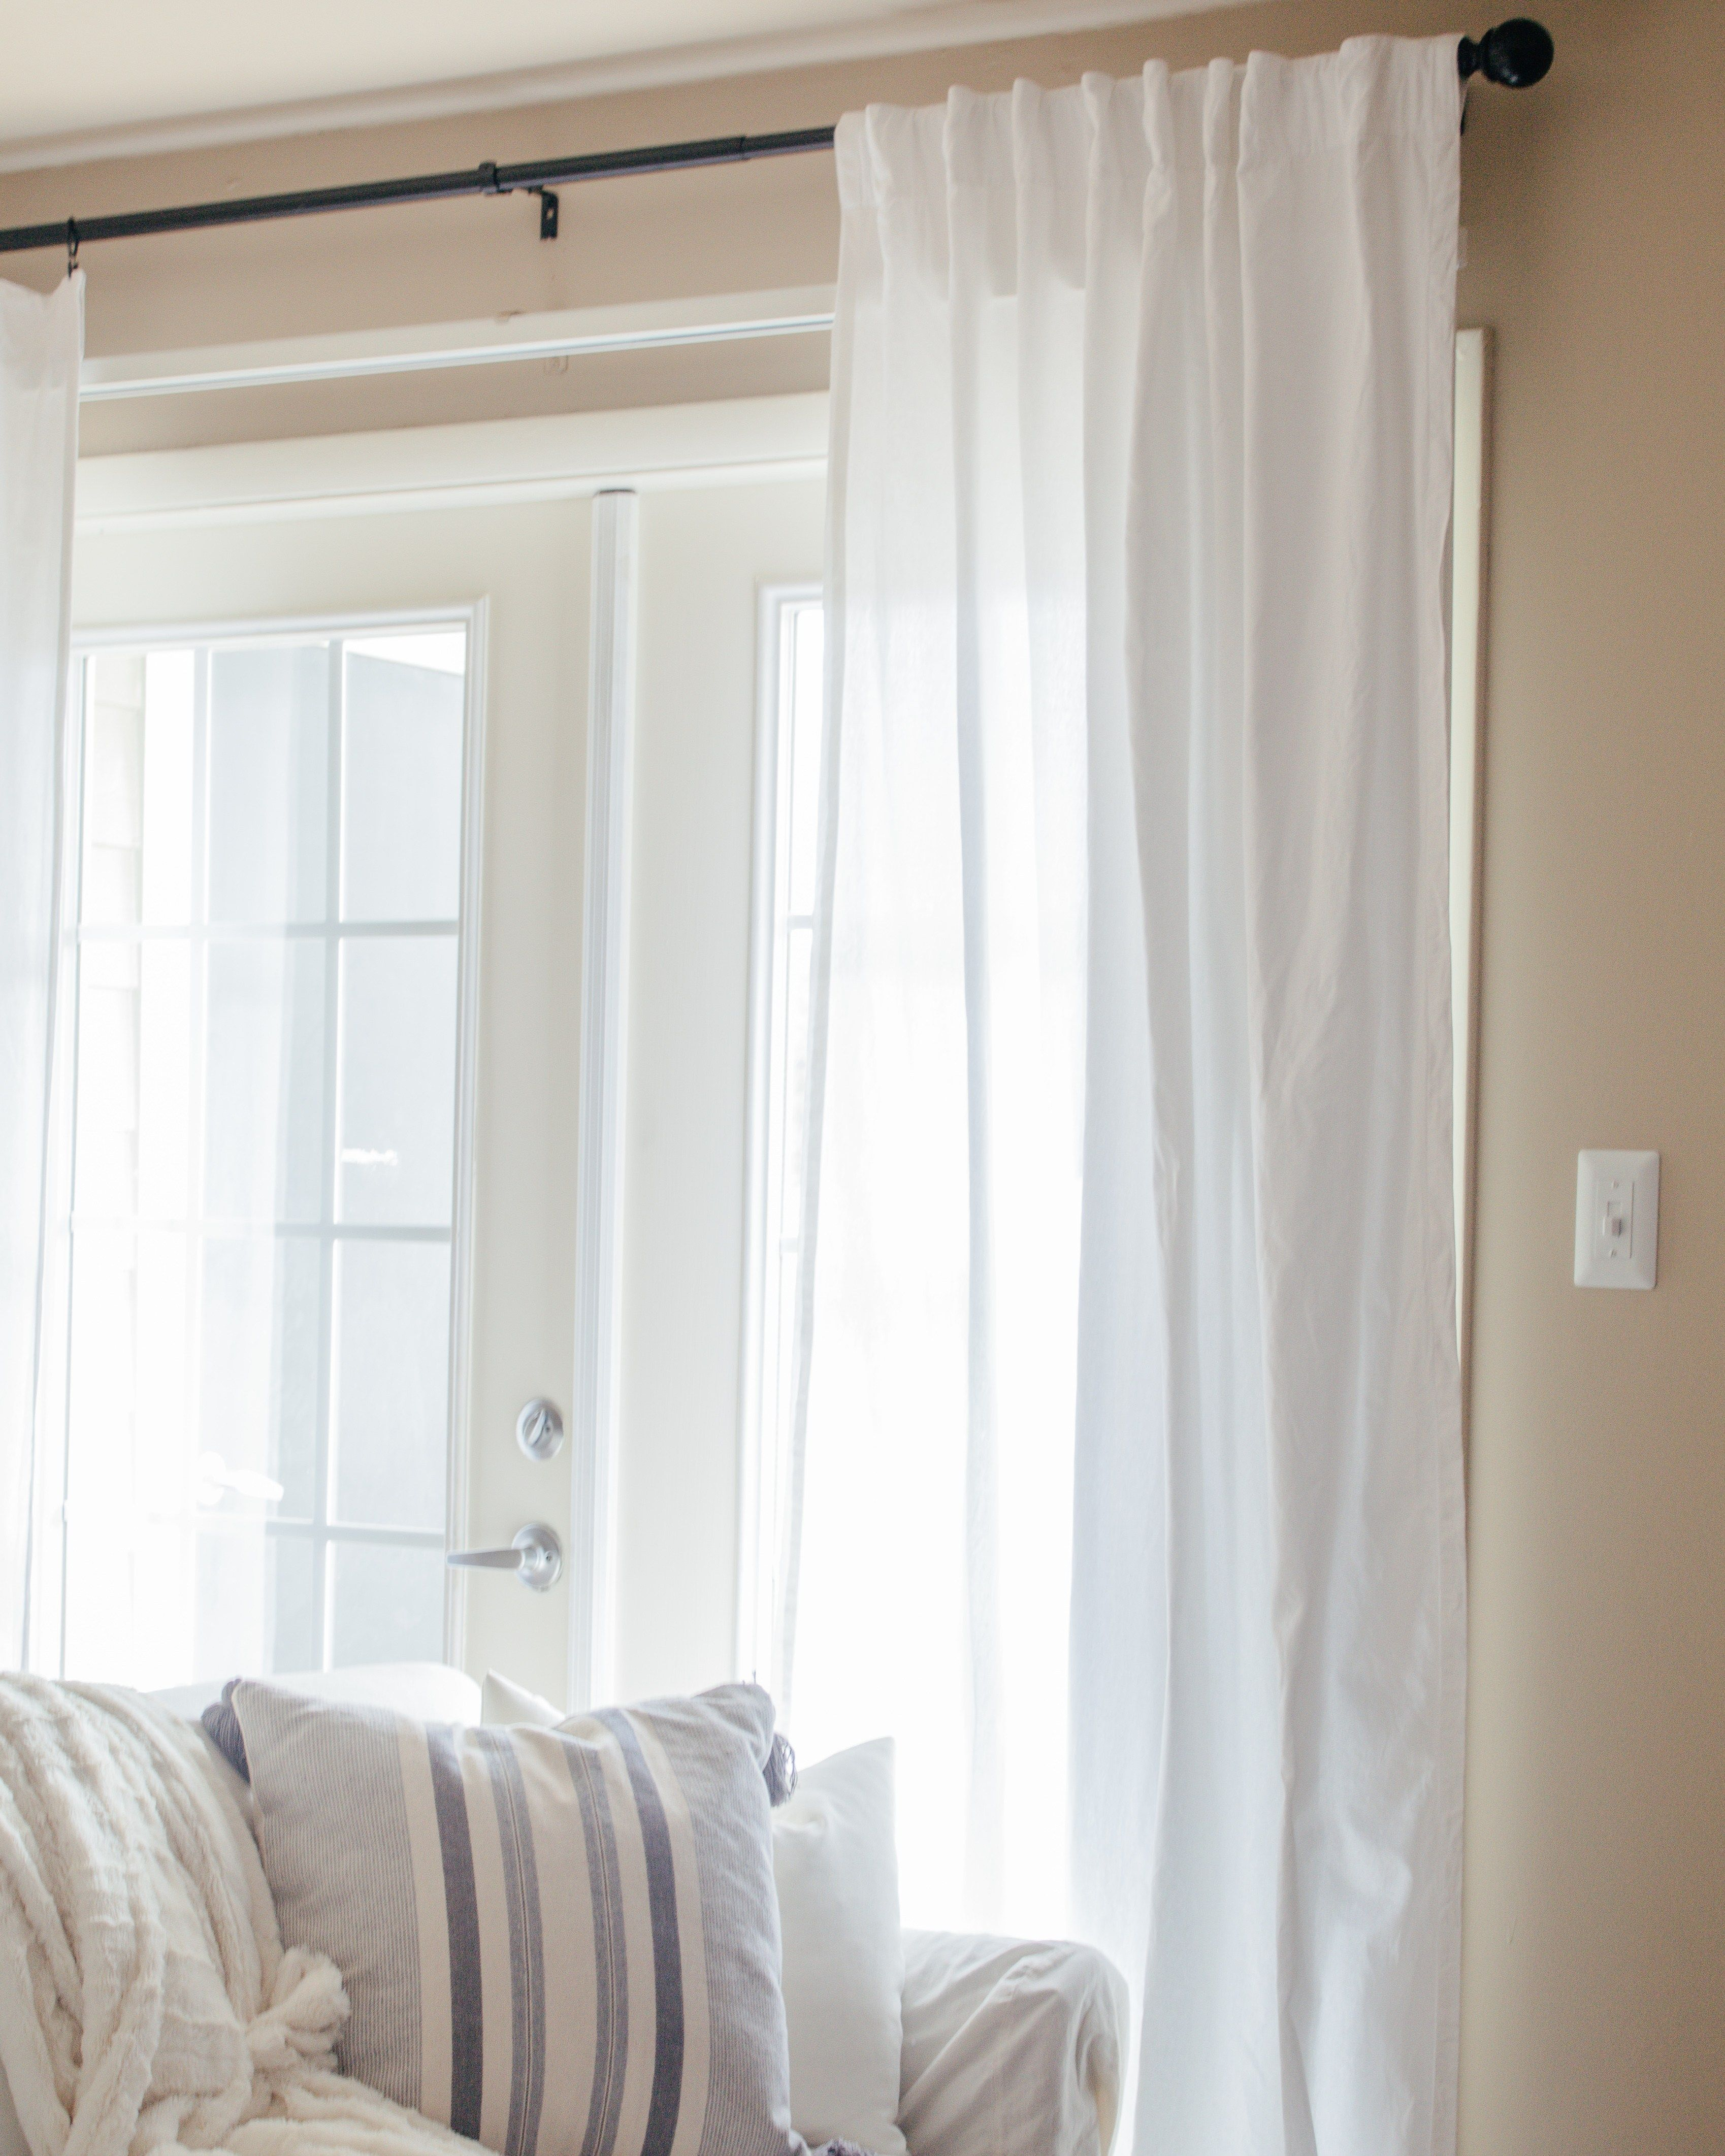 How To Cover The Vertical Blinds In Your Apartment With Images